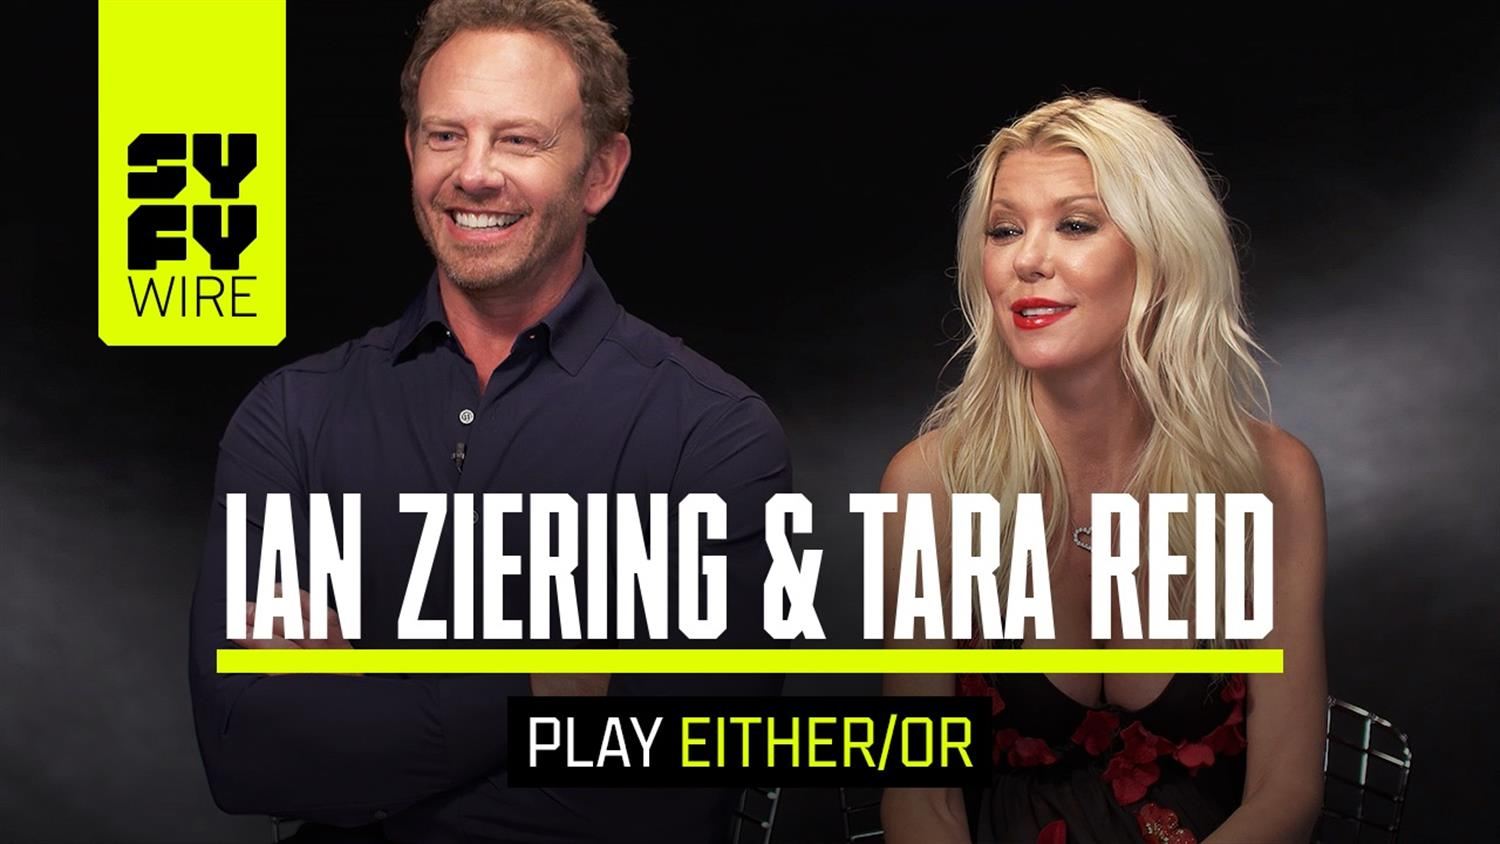 Ian Ziering and Tara Reid Play Either/Or (Including Sharknado vs. Meg)